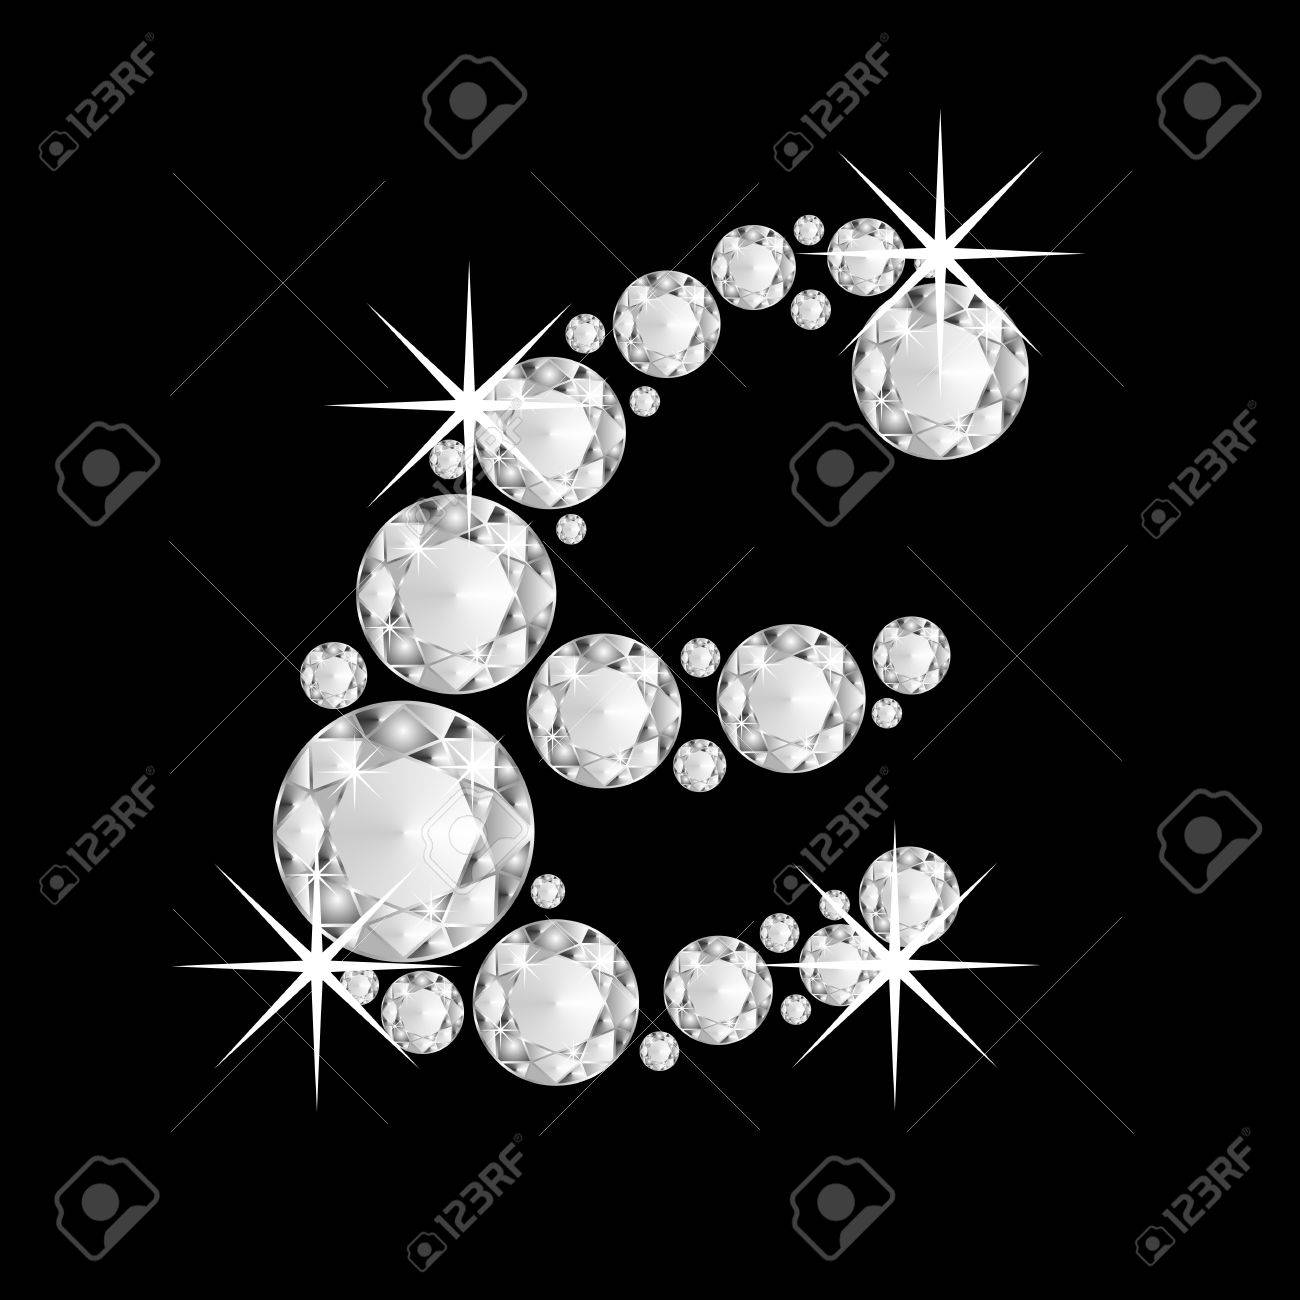 Background image e - Luxury Jewelry Alphabet Or Font With Diamonds On Black Background Letter E Stock Photo 19958943